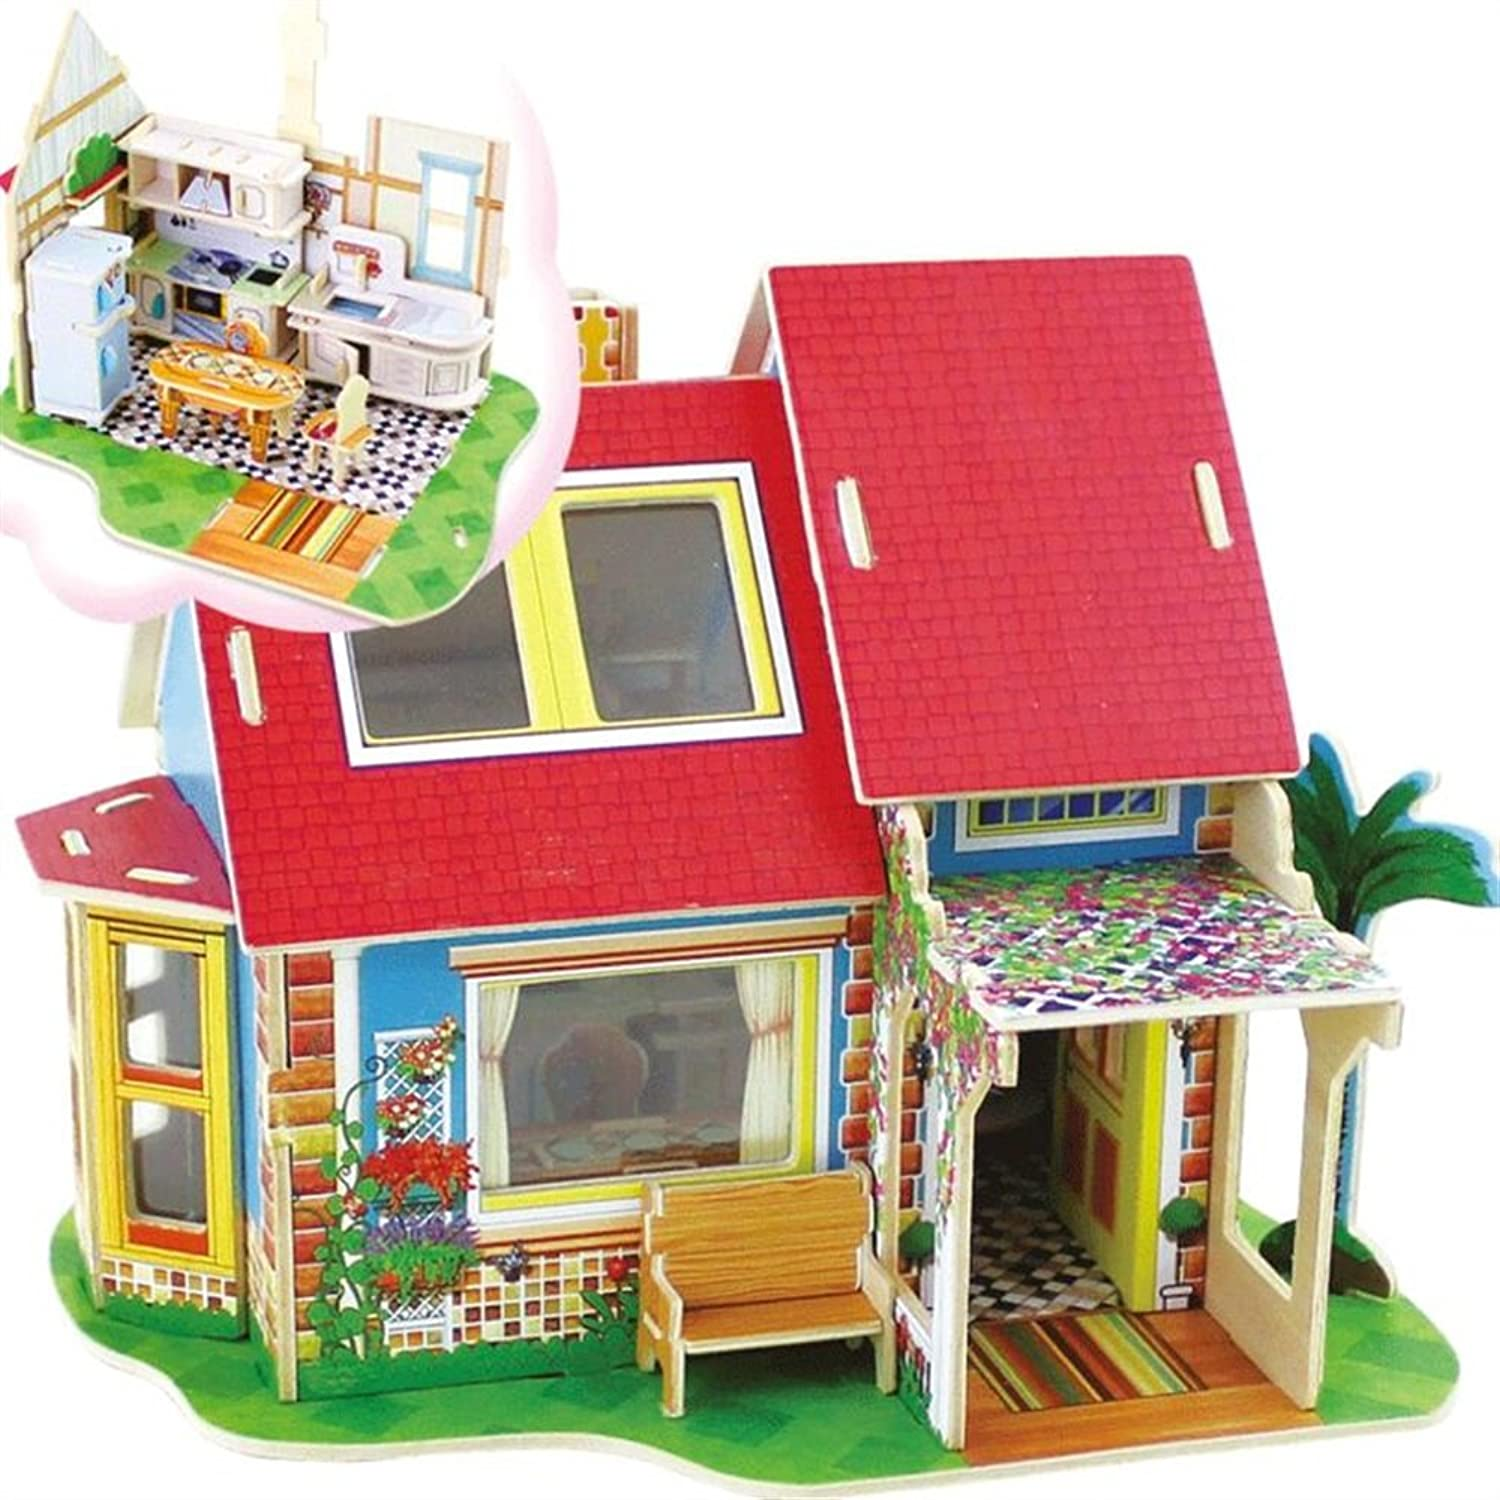 Leng QL Kids Early Development Toy colorful Wooden 3D House Puzzle Early Learning Toy Fantastic Gifts for Kids(Kitchen)